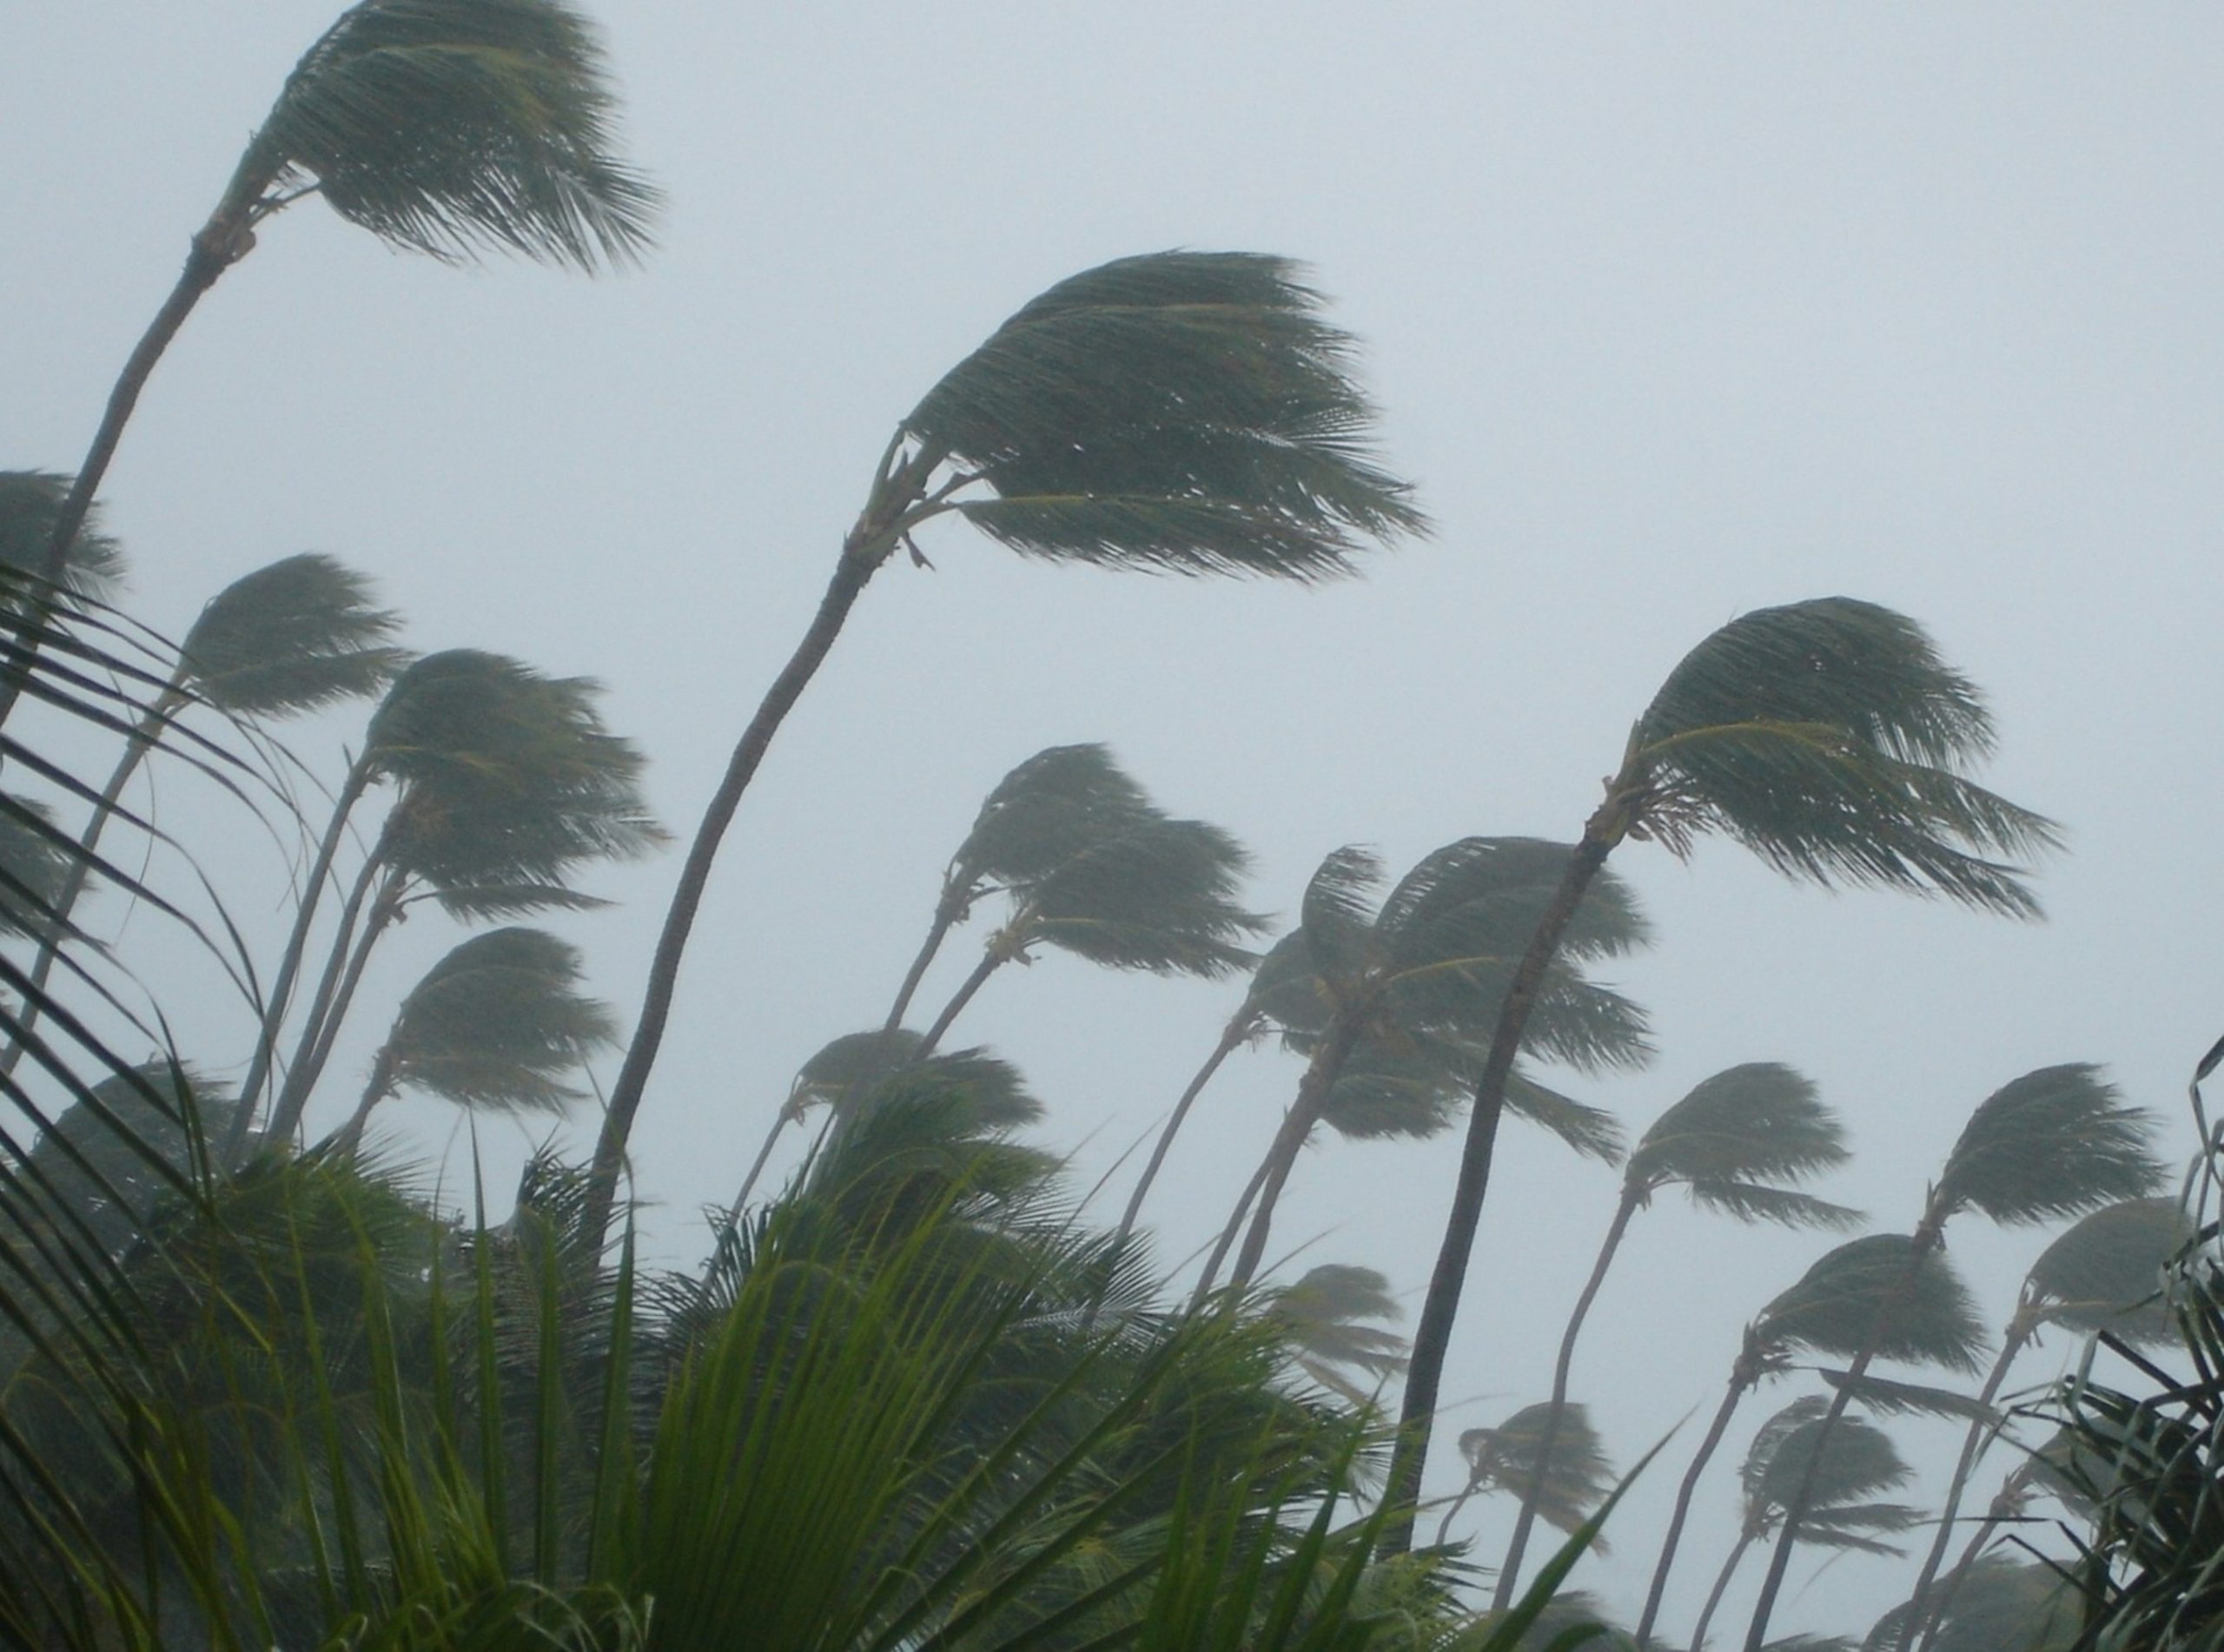 Palm trees blowing in the wind during Tropical Storm Elsa.